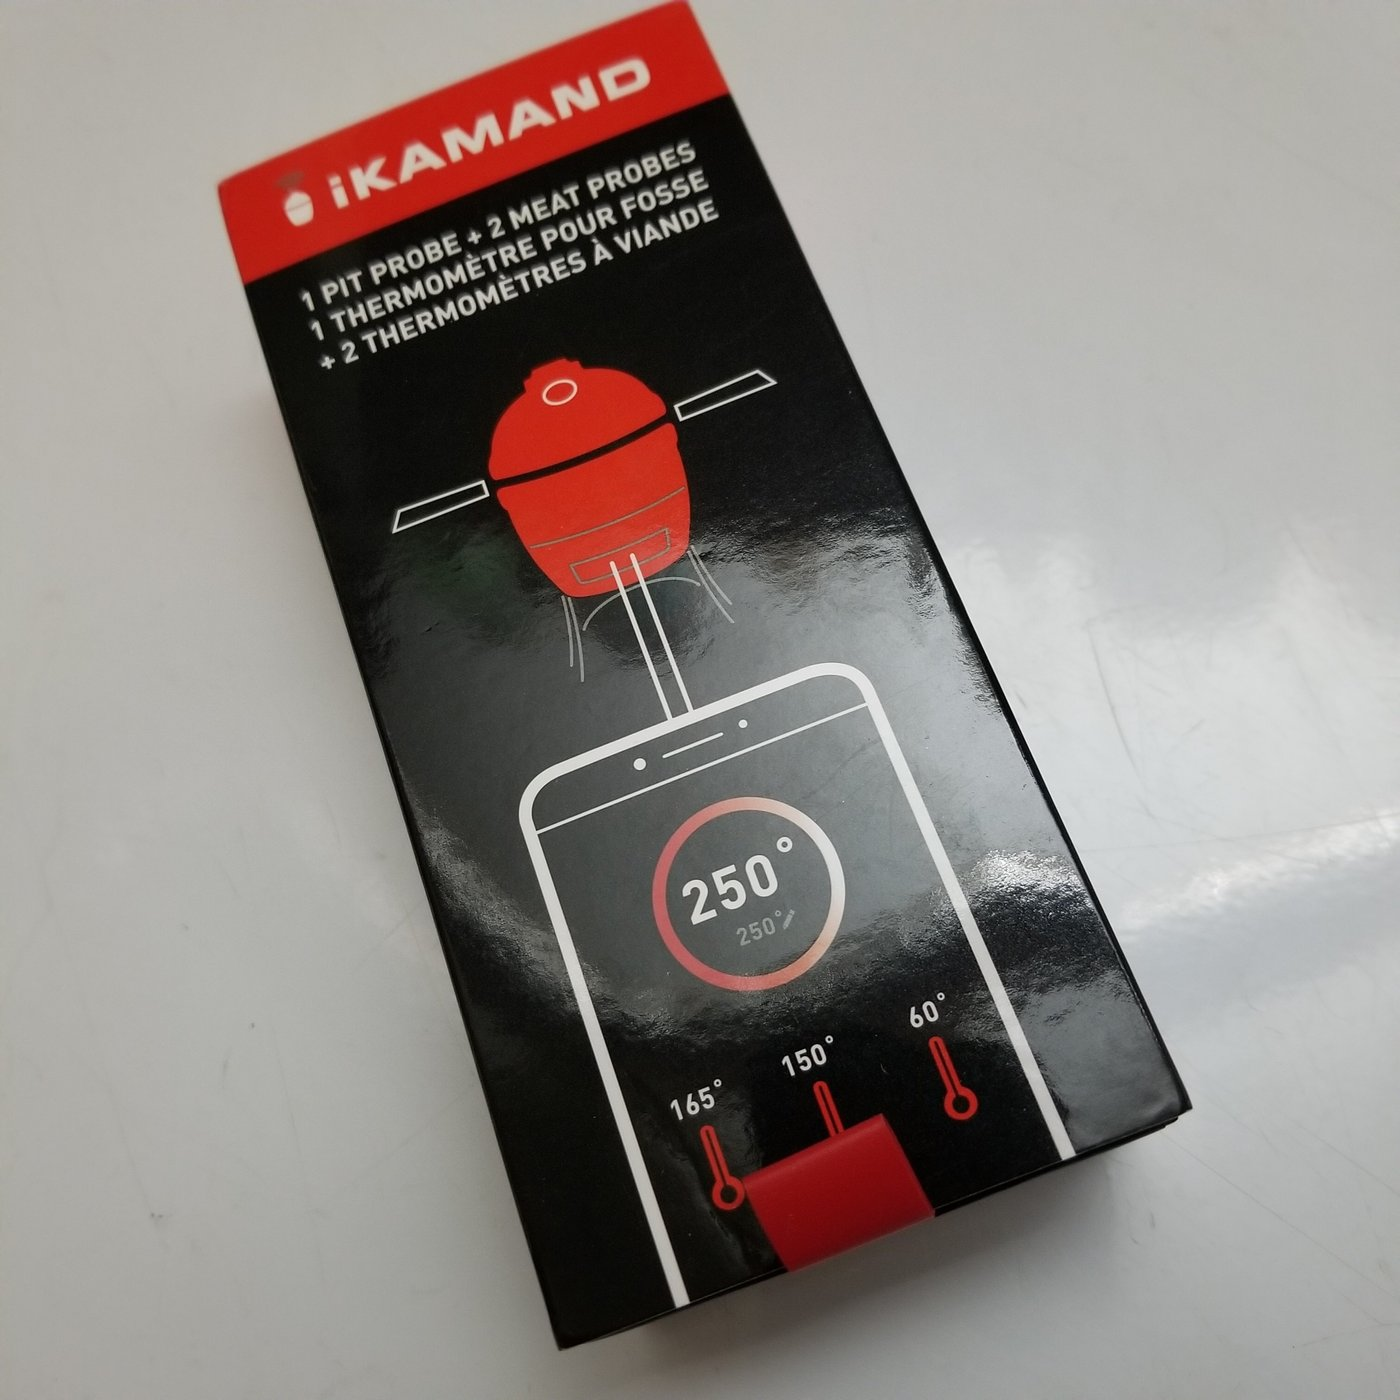 Kamado Joe iKamand Replacement Probes - KJ-IKamandPK